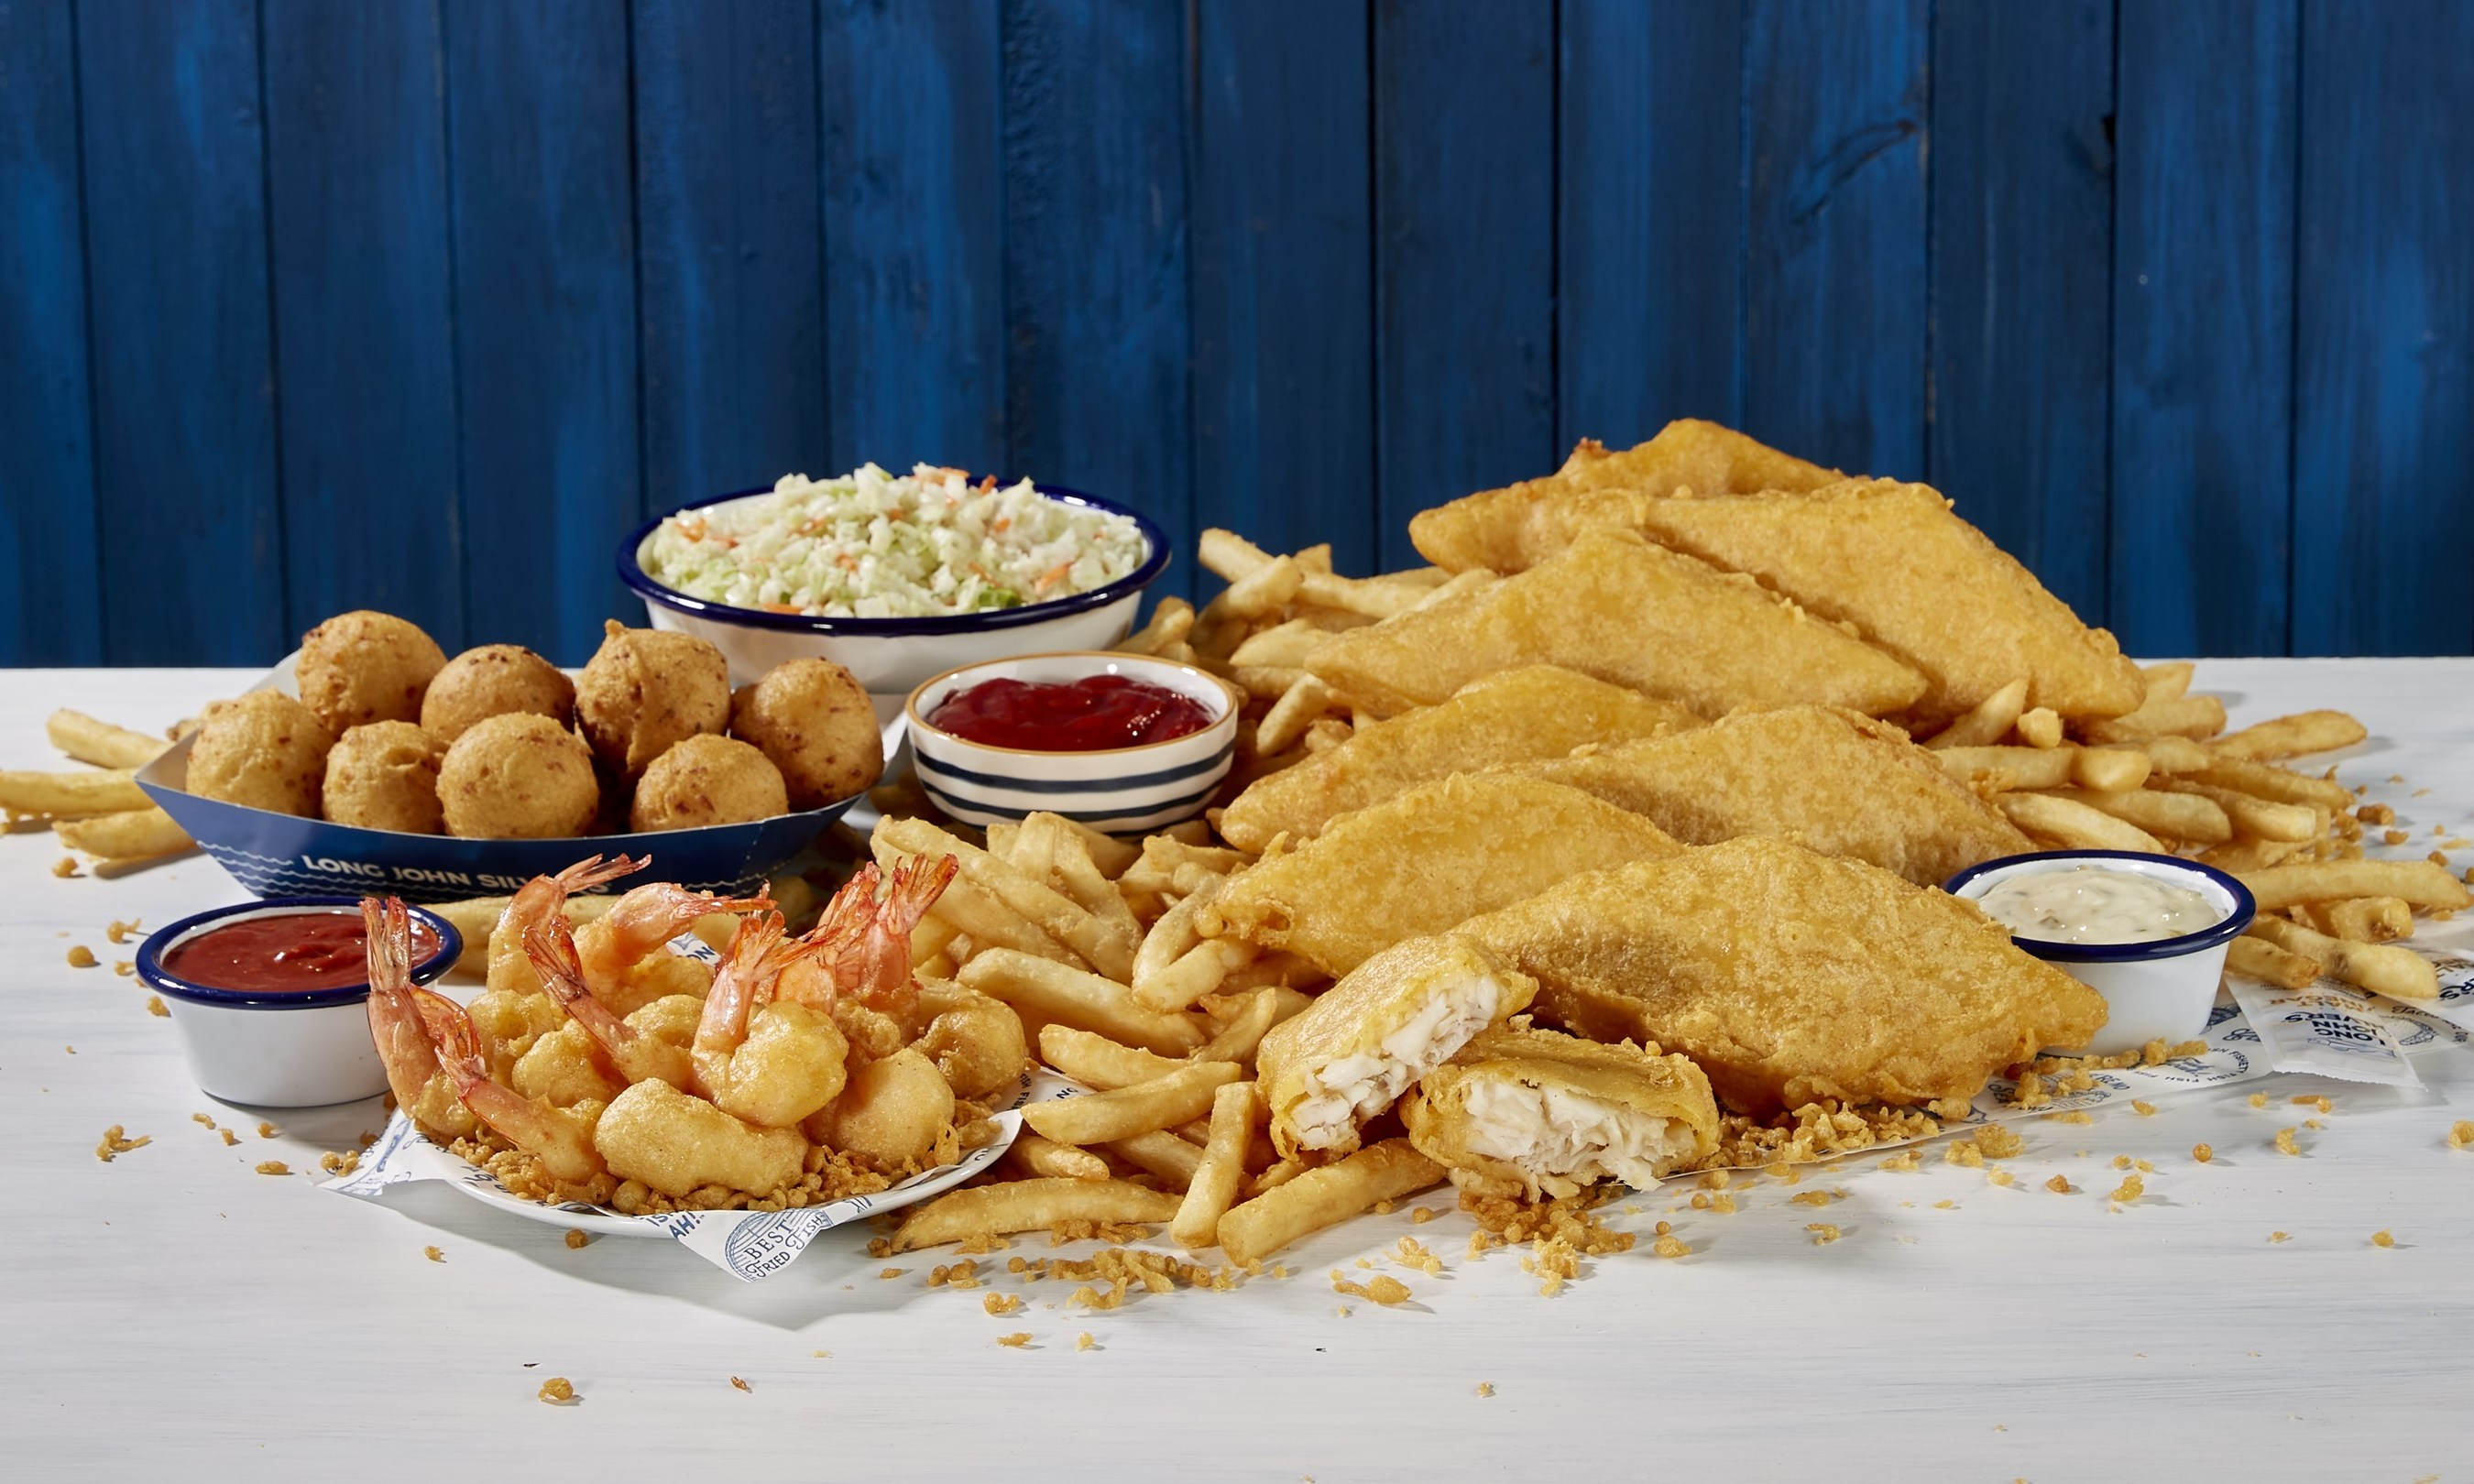 Long John Silver's Ready for Lenten Season With Latest Shrimp Specials